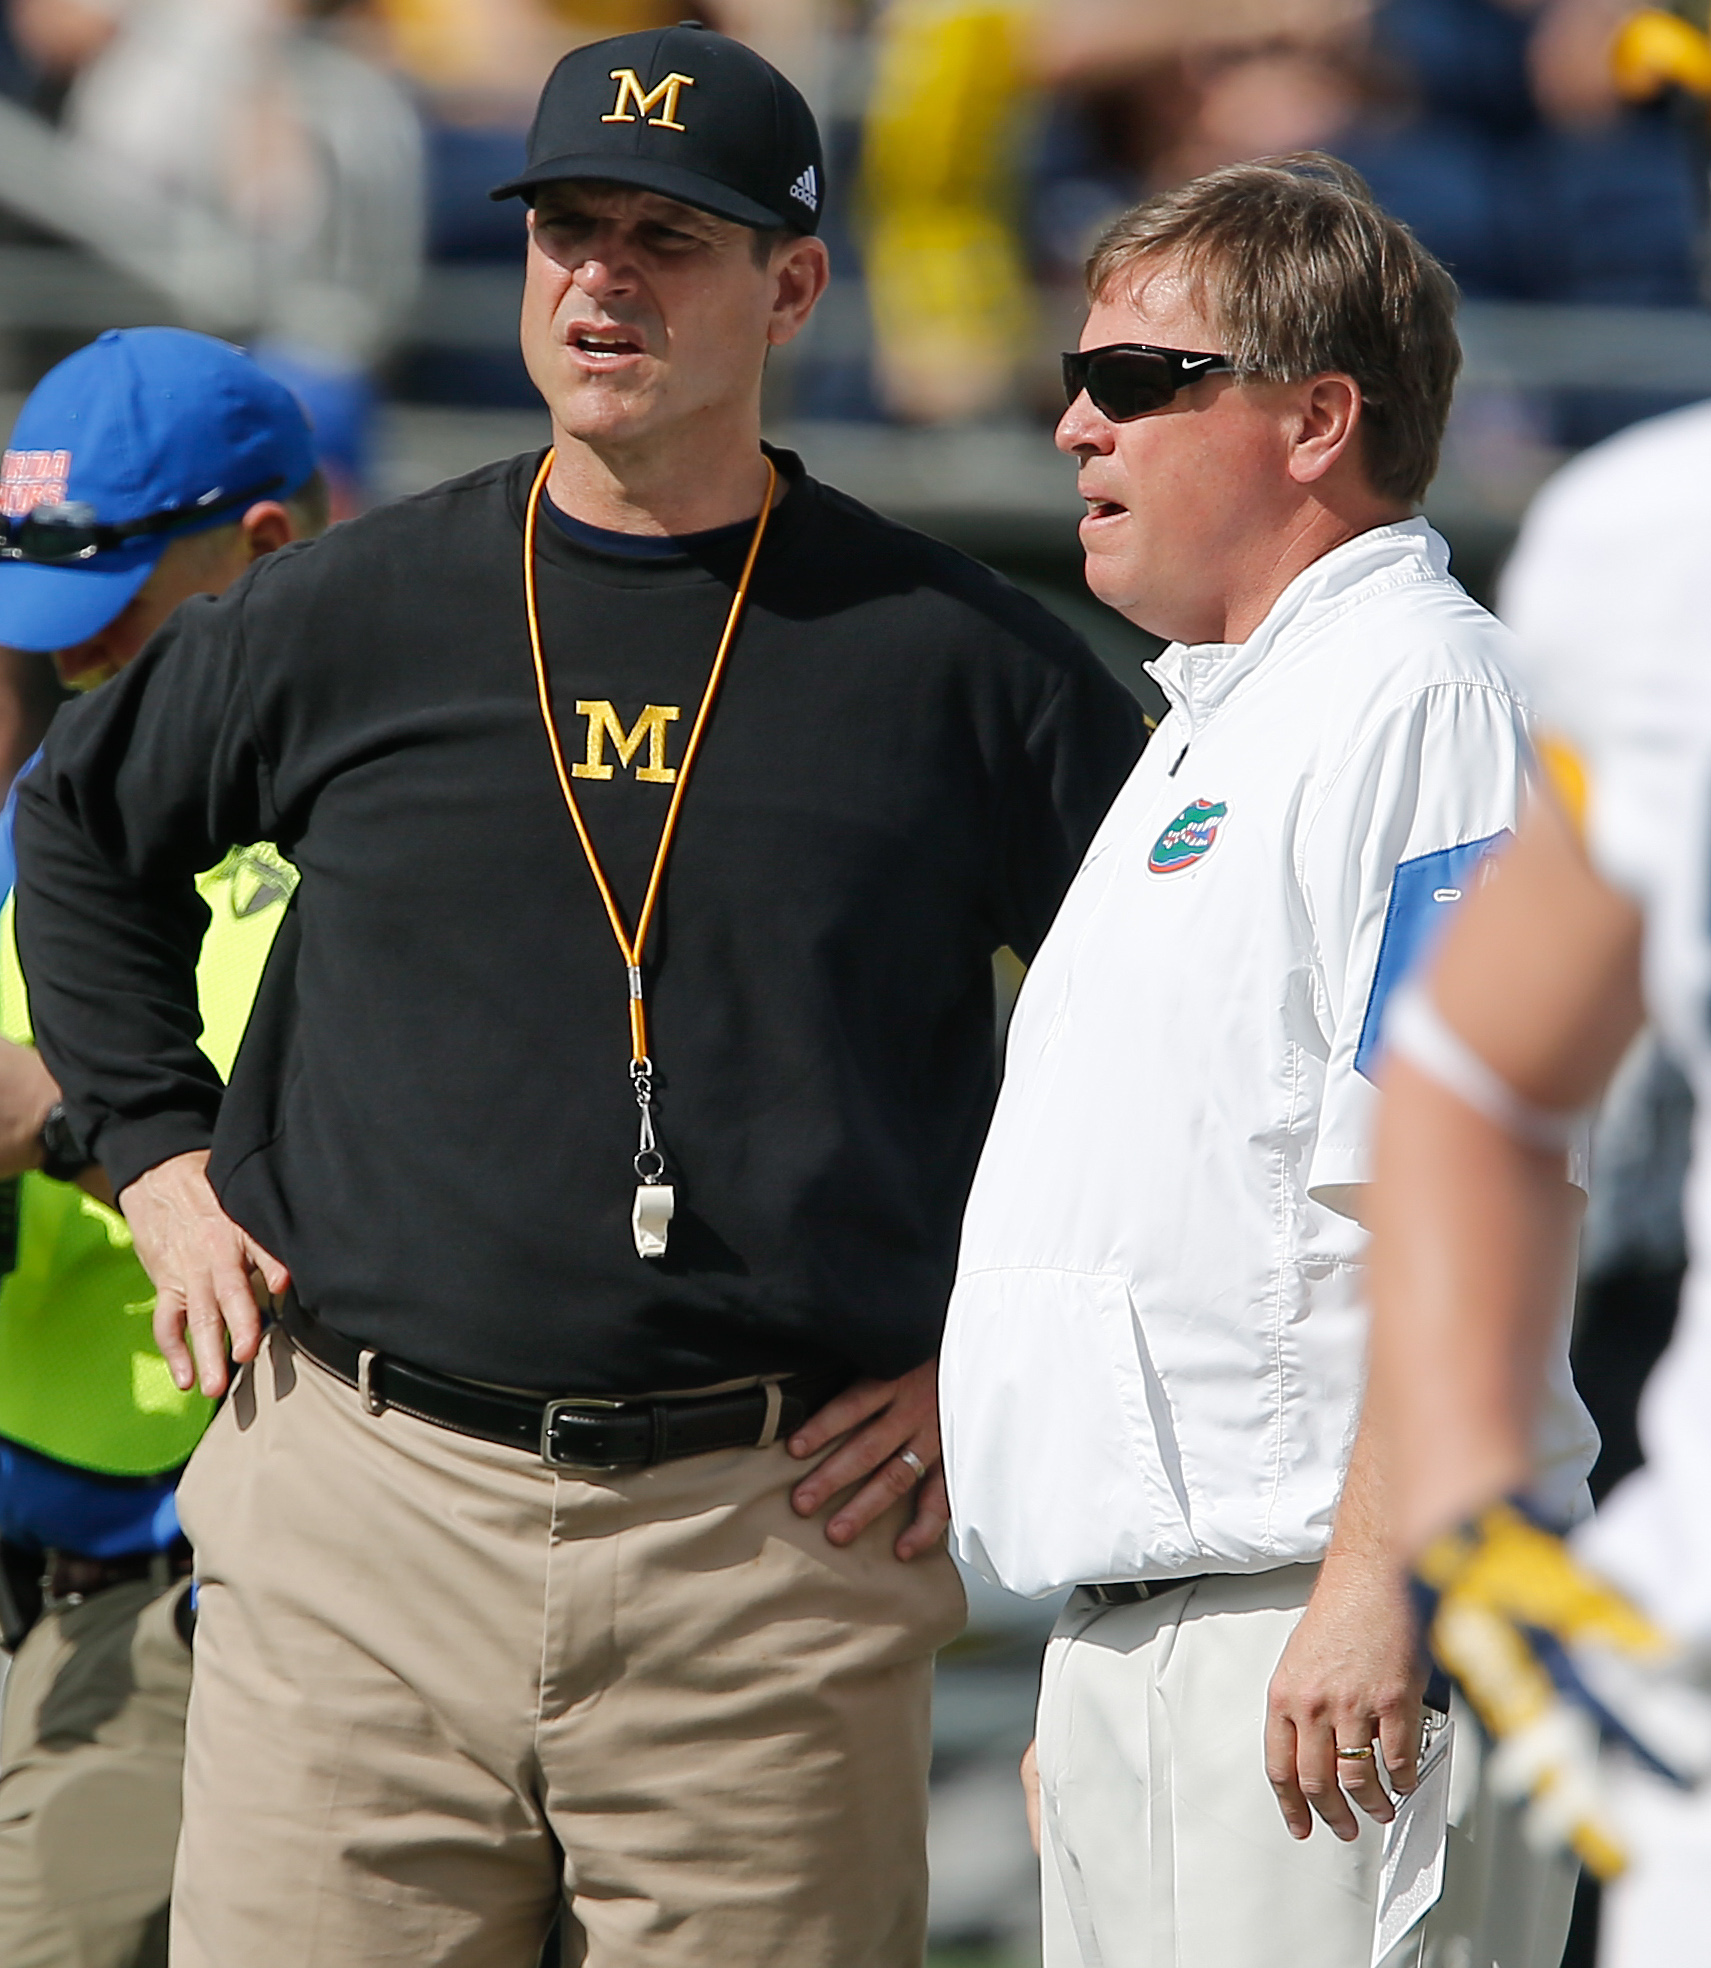 Jim McElwain: Florida plans to 'beat the heck out of Michigan'